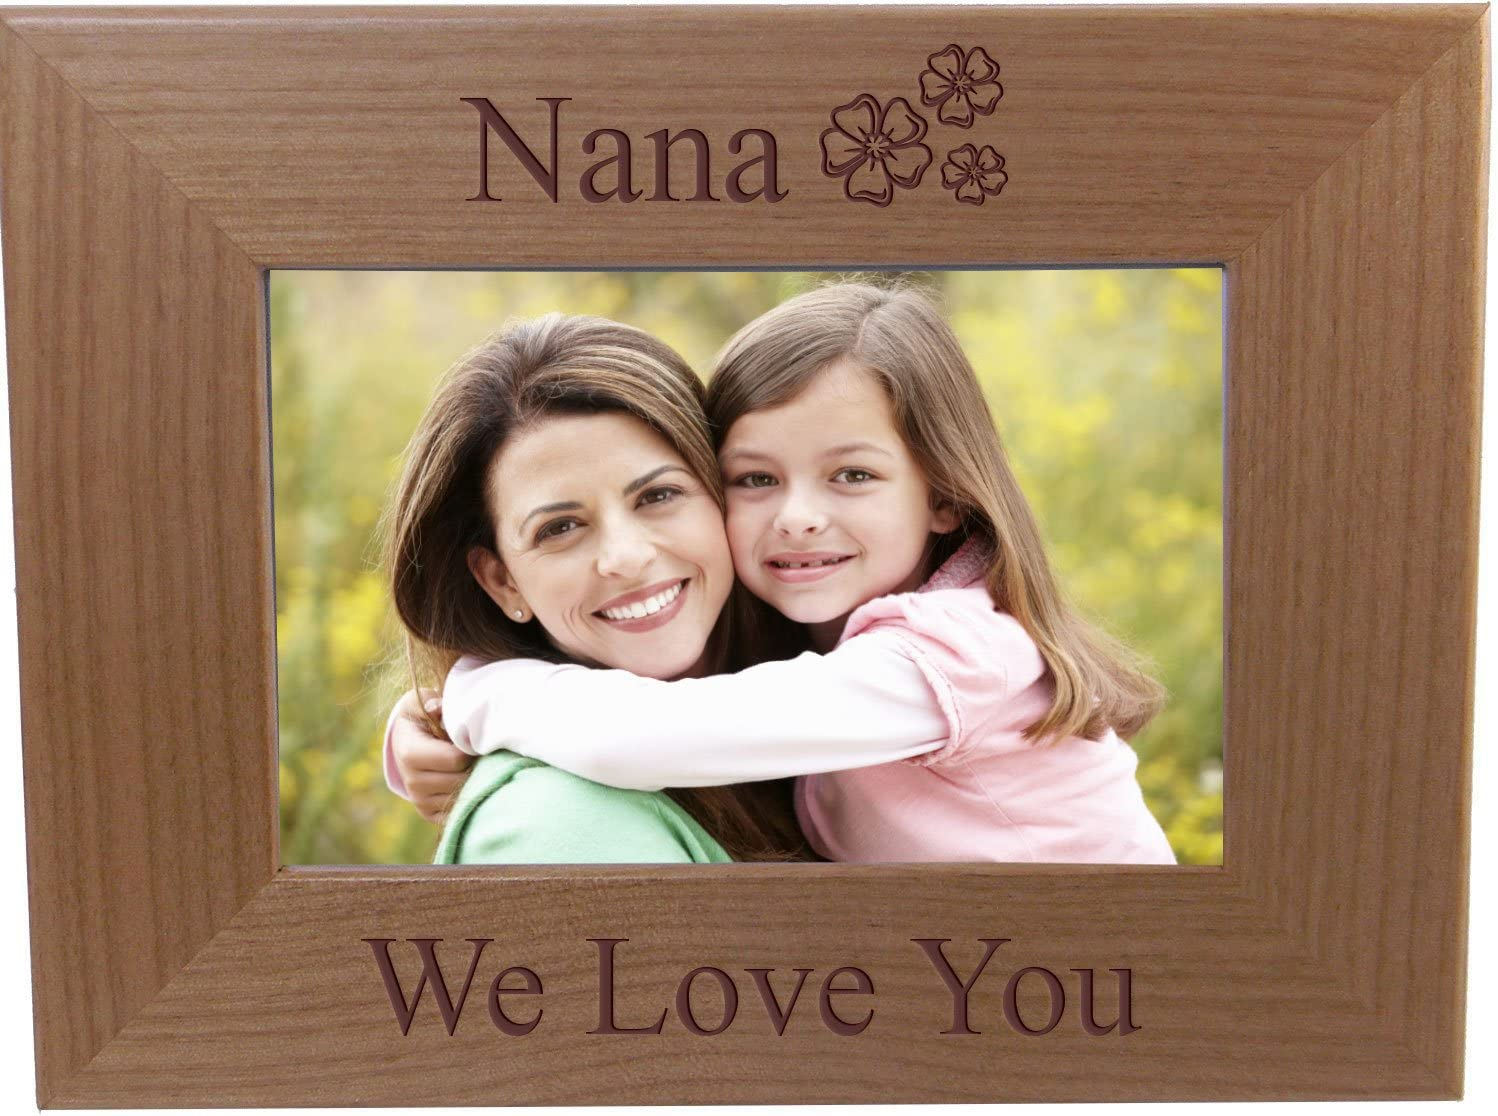 Nana We Love You - Engraved Credence Alder Picture Hanging Tabletop Wood Max 51% OFF